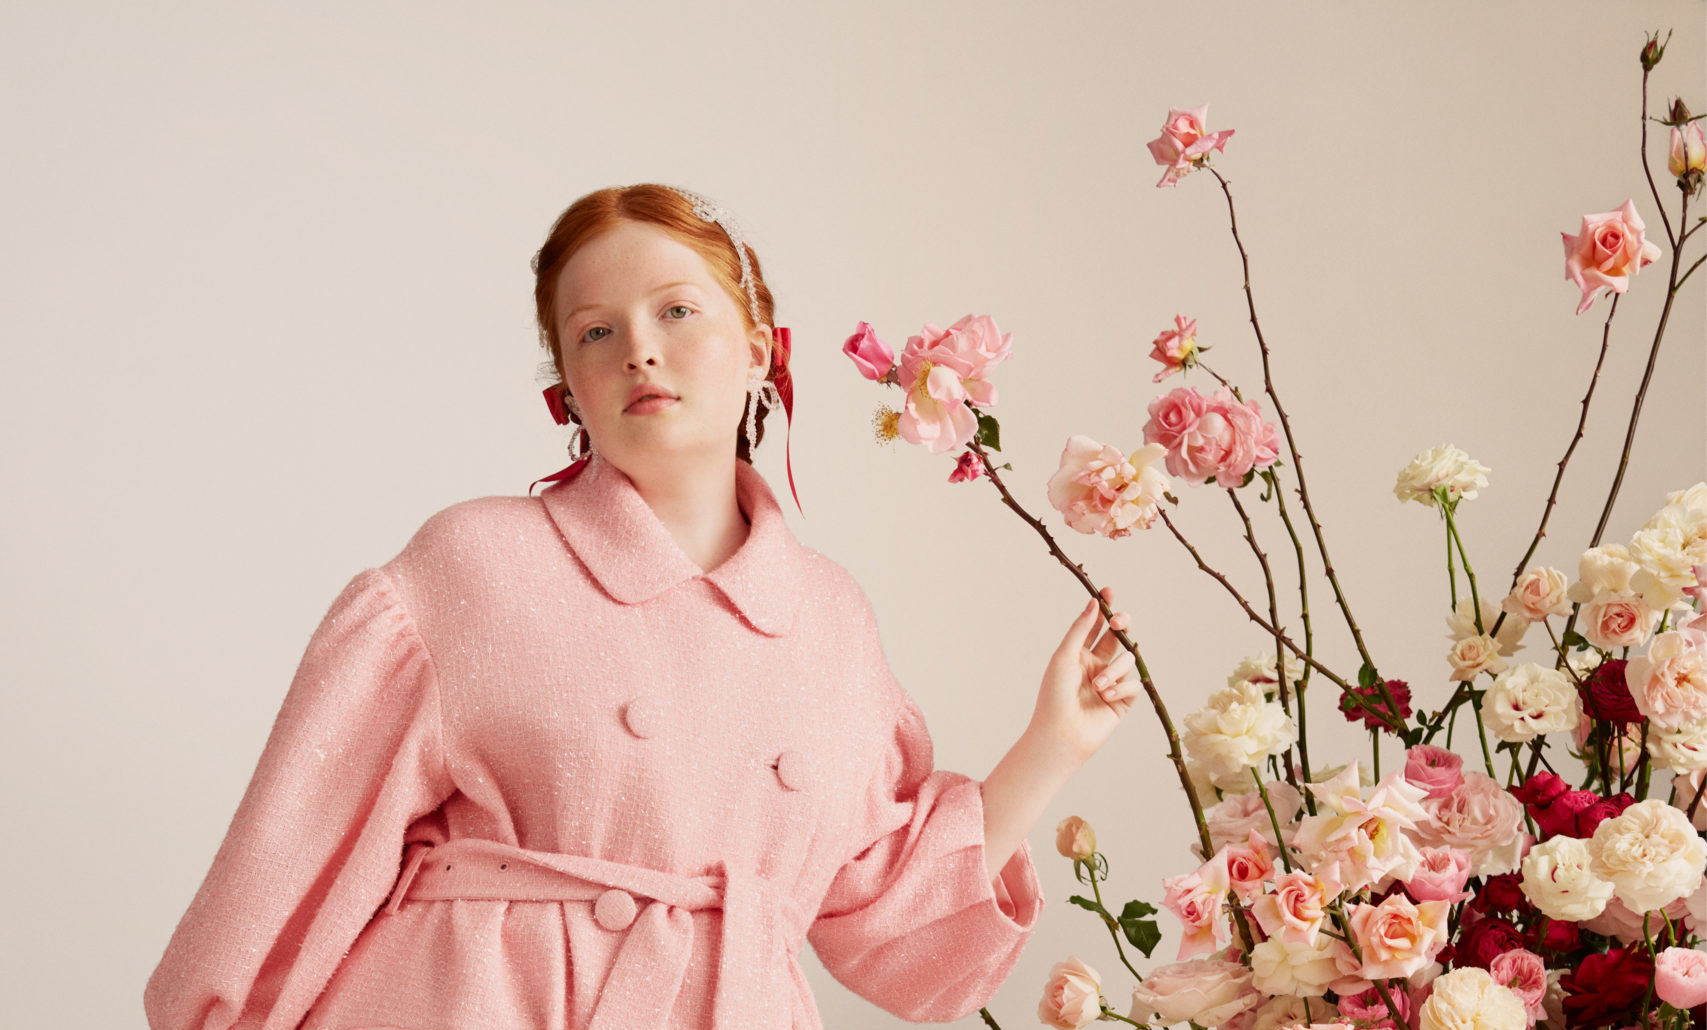 Introducing Simone Rocha's Whimsical H&M Collaboration